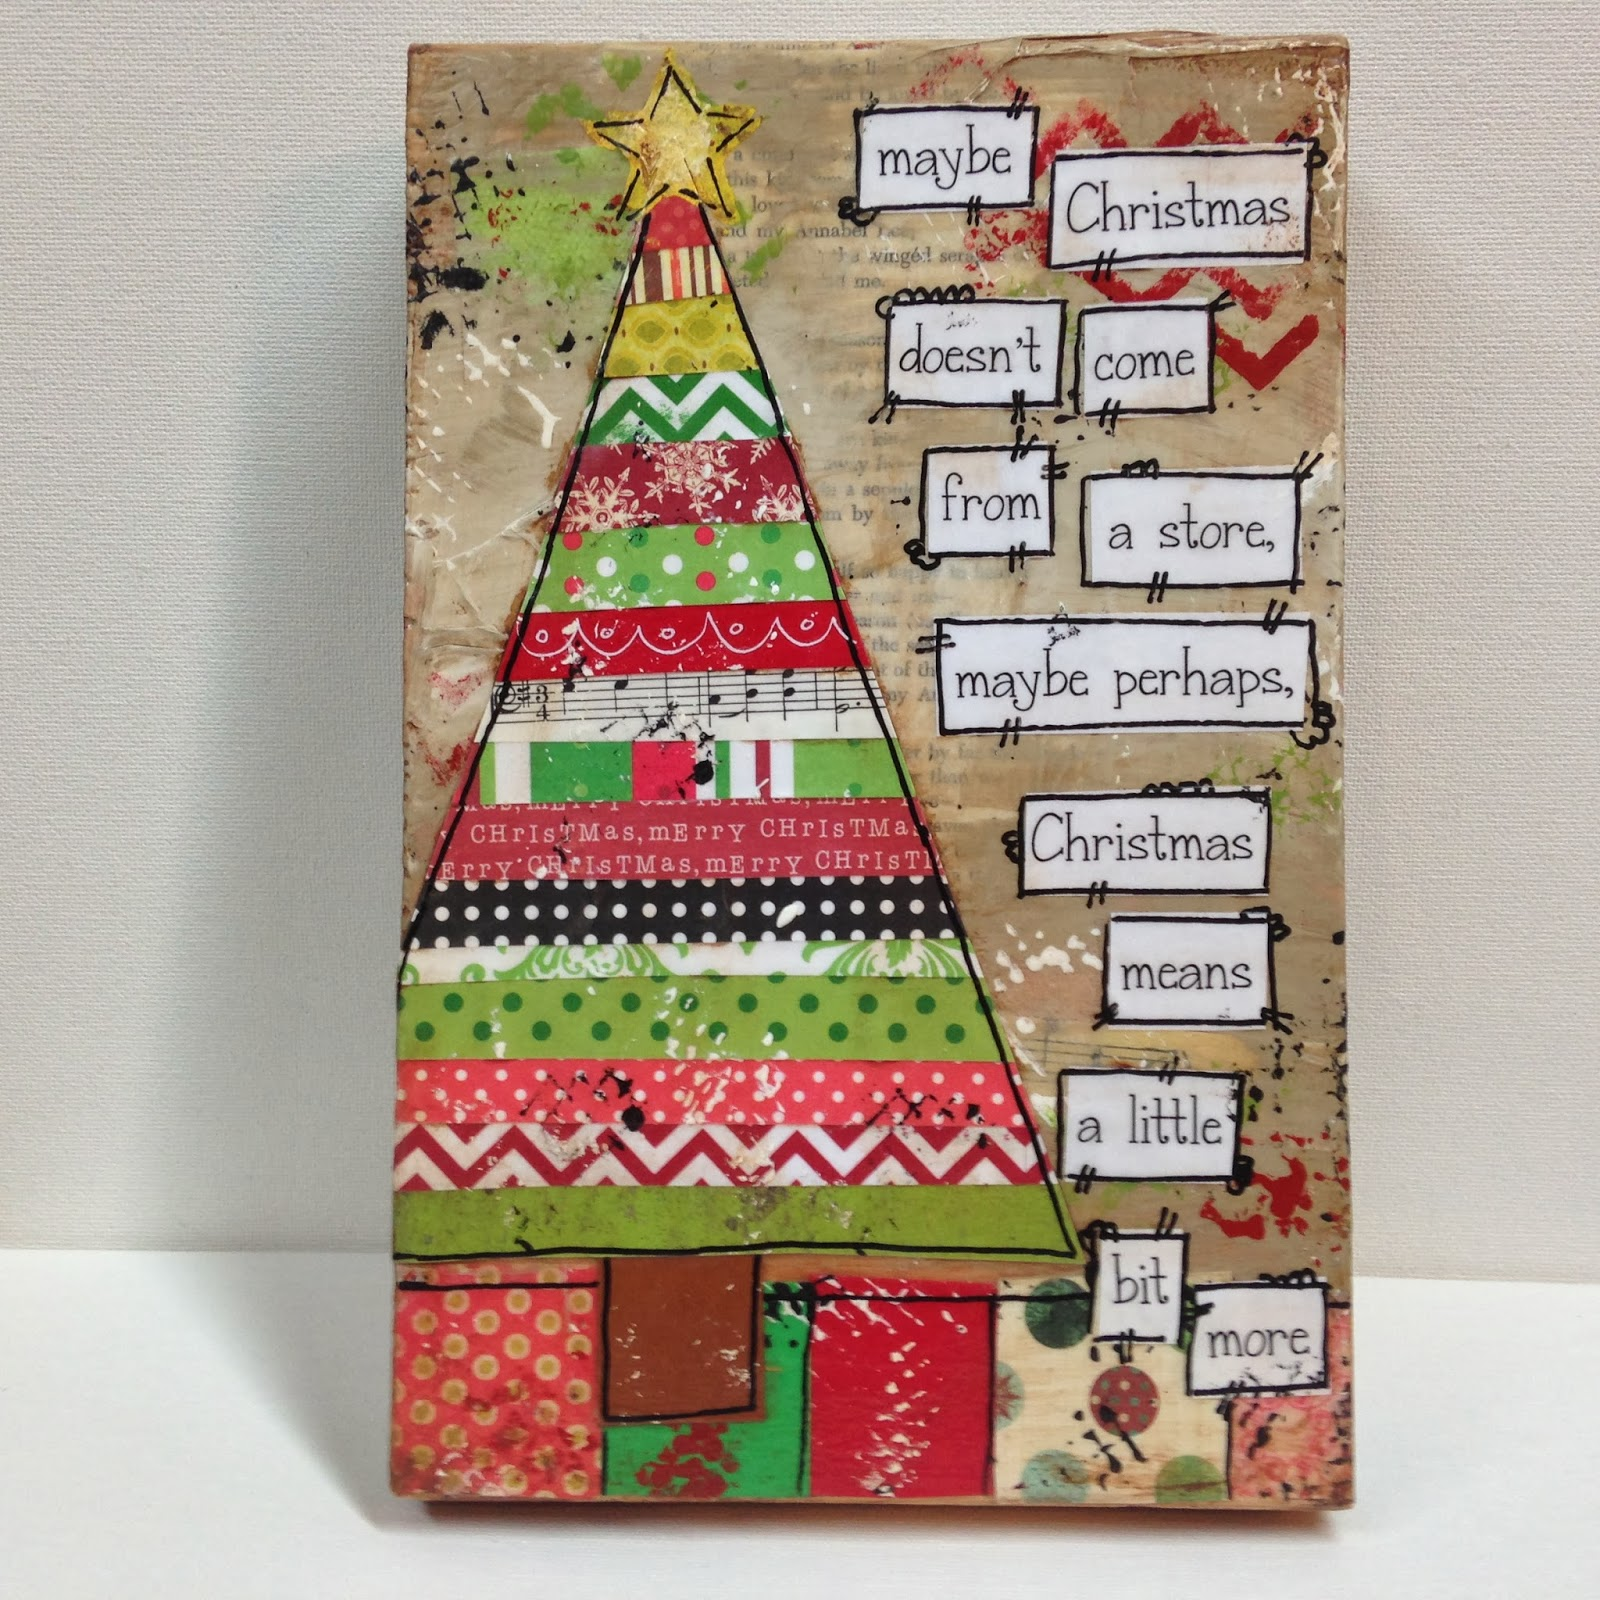 Heartfelt november 2013 for Harrisburg christmas craft show